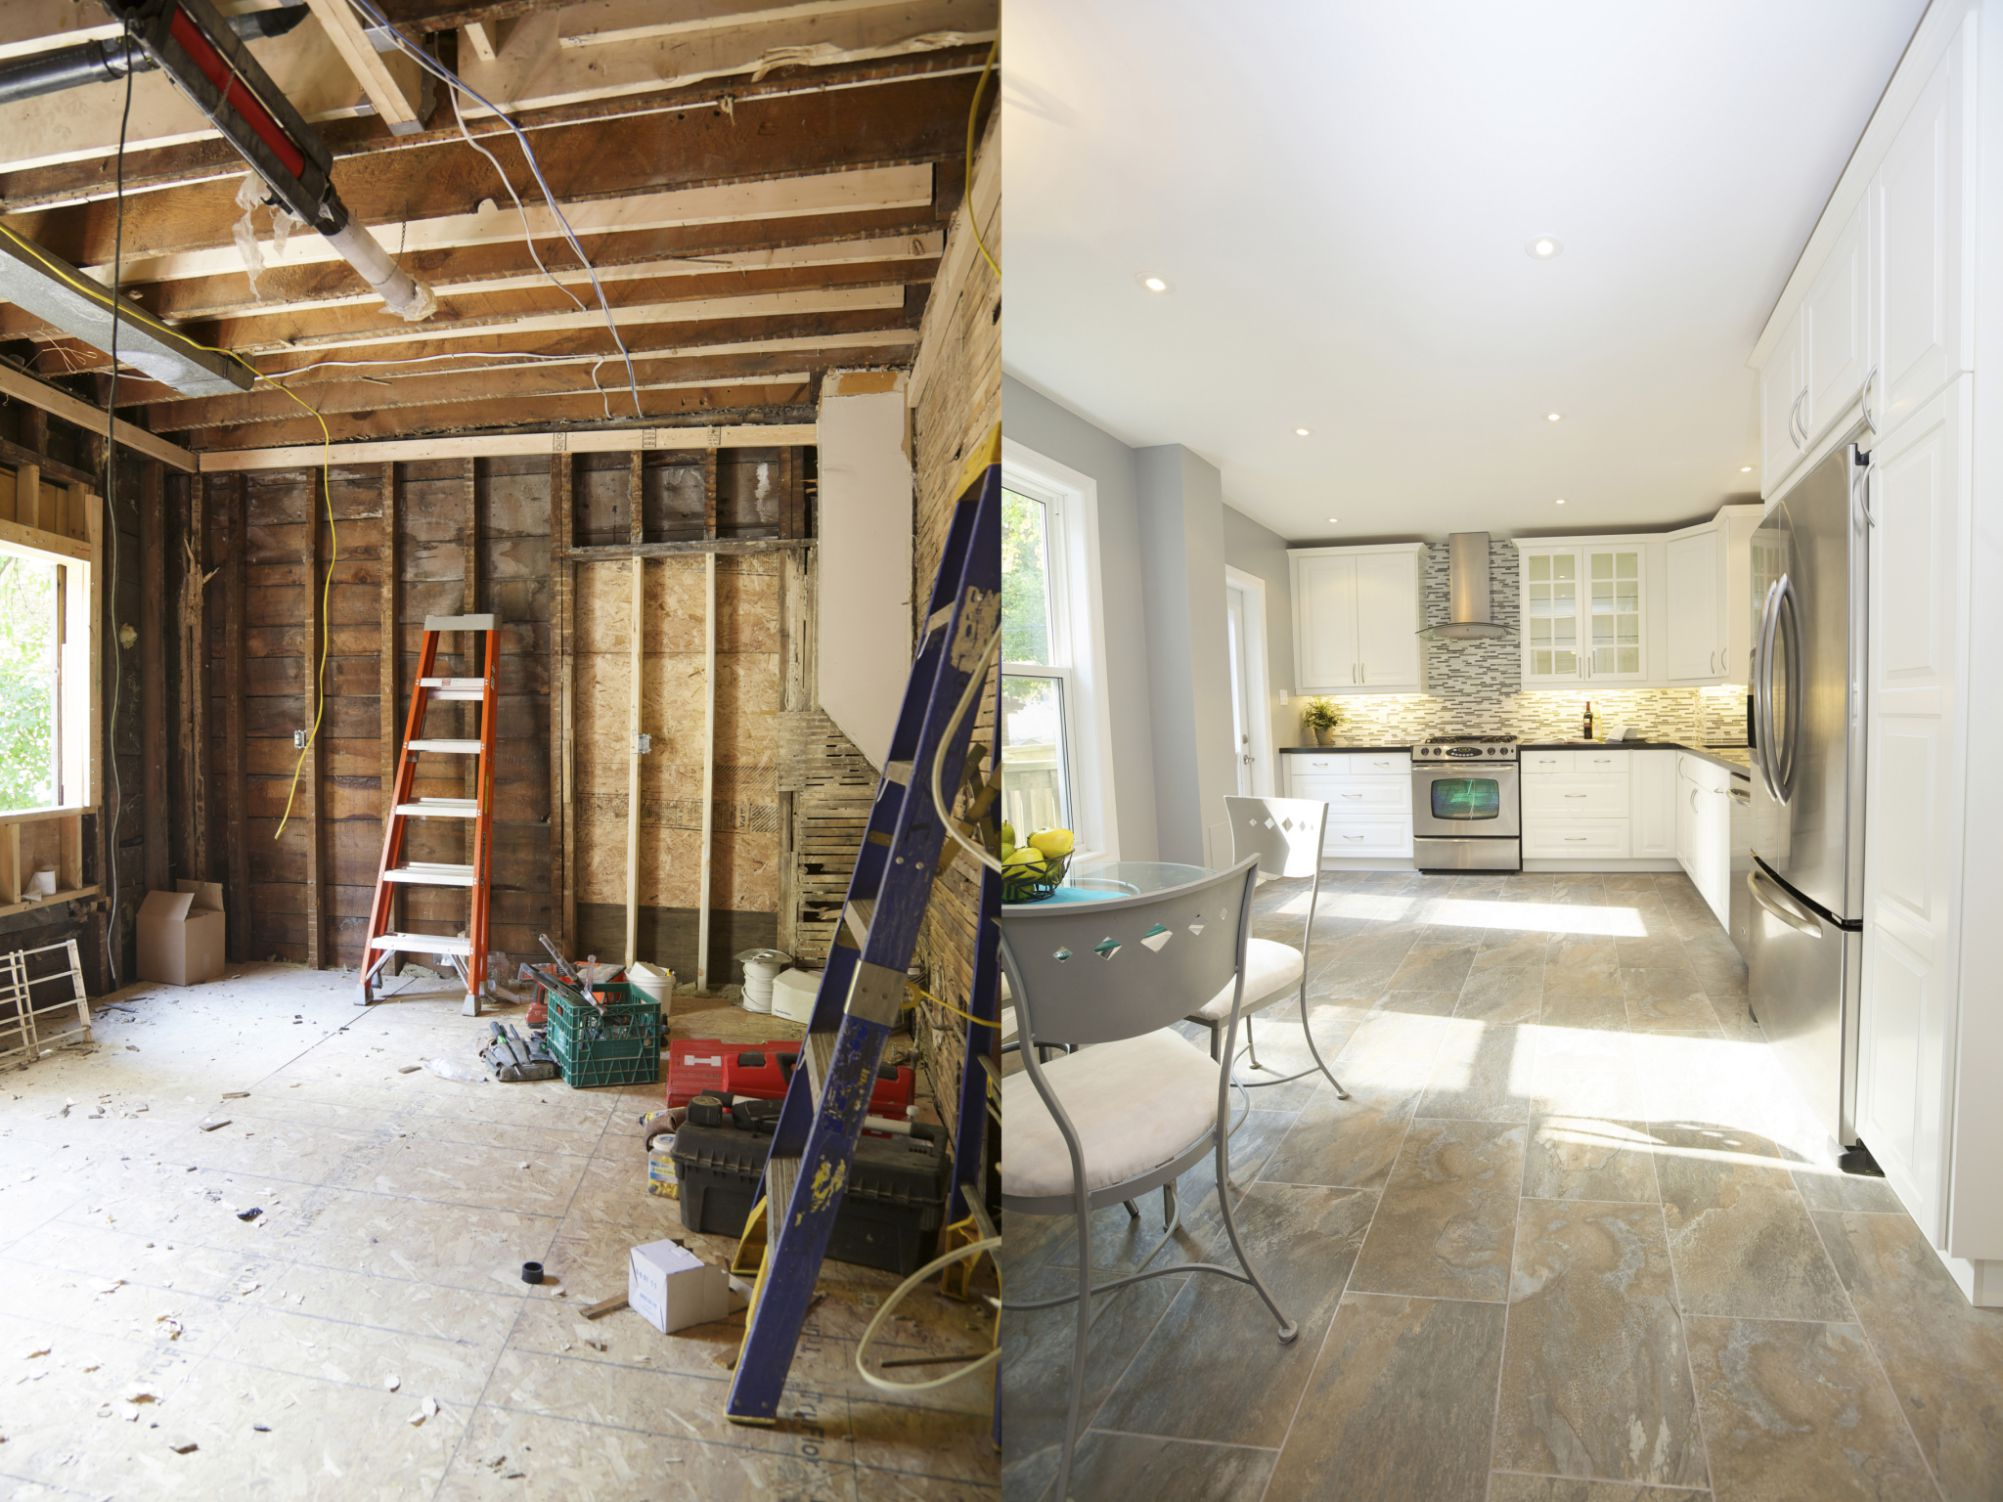 Should You Remodel or Tear Down and Rebuild Your House